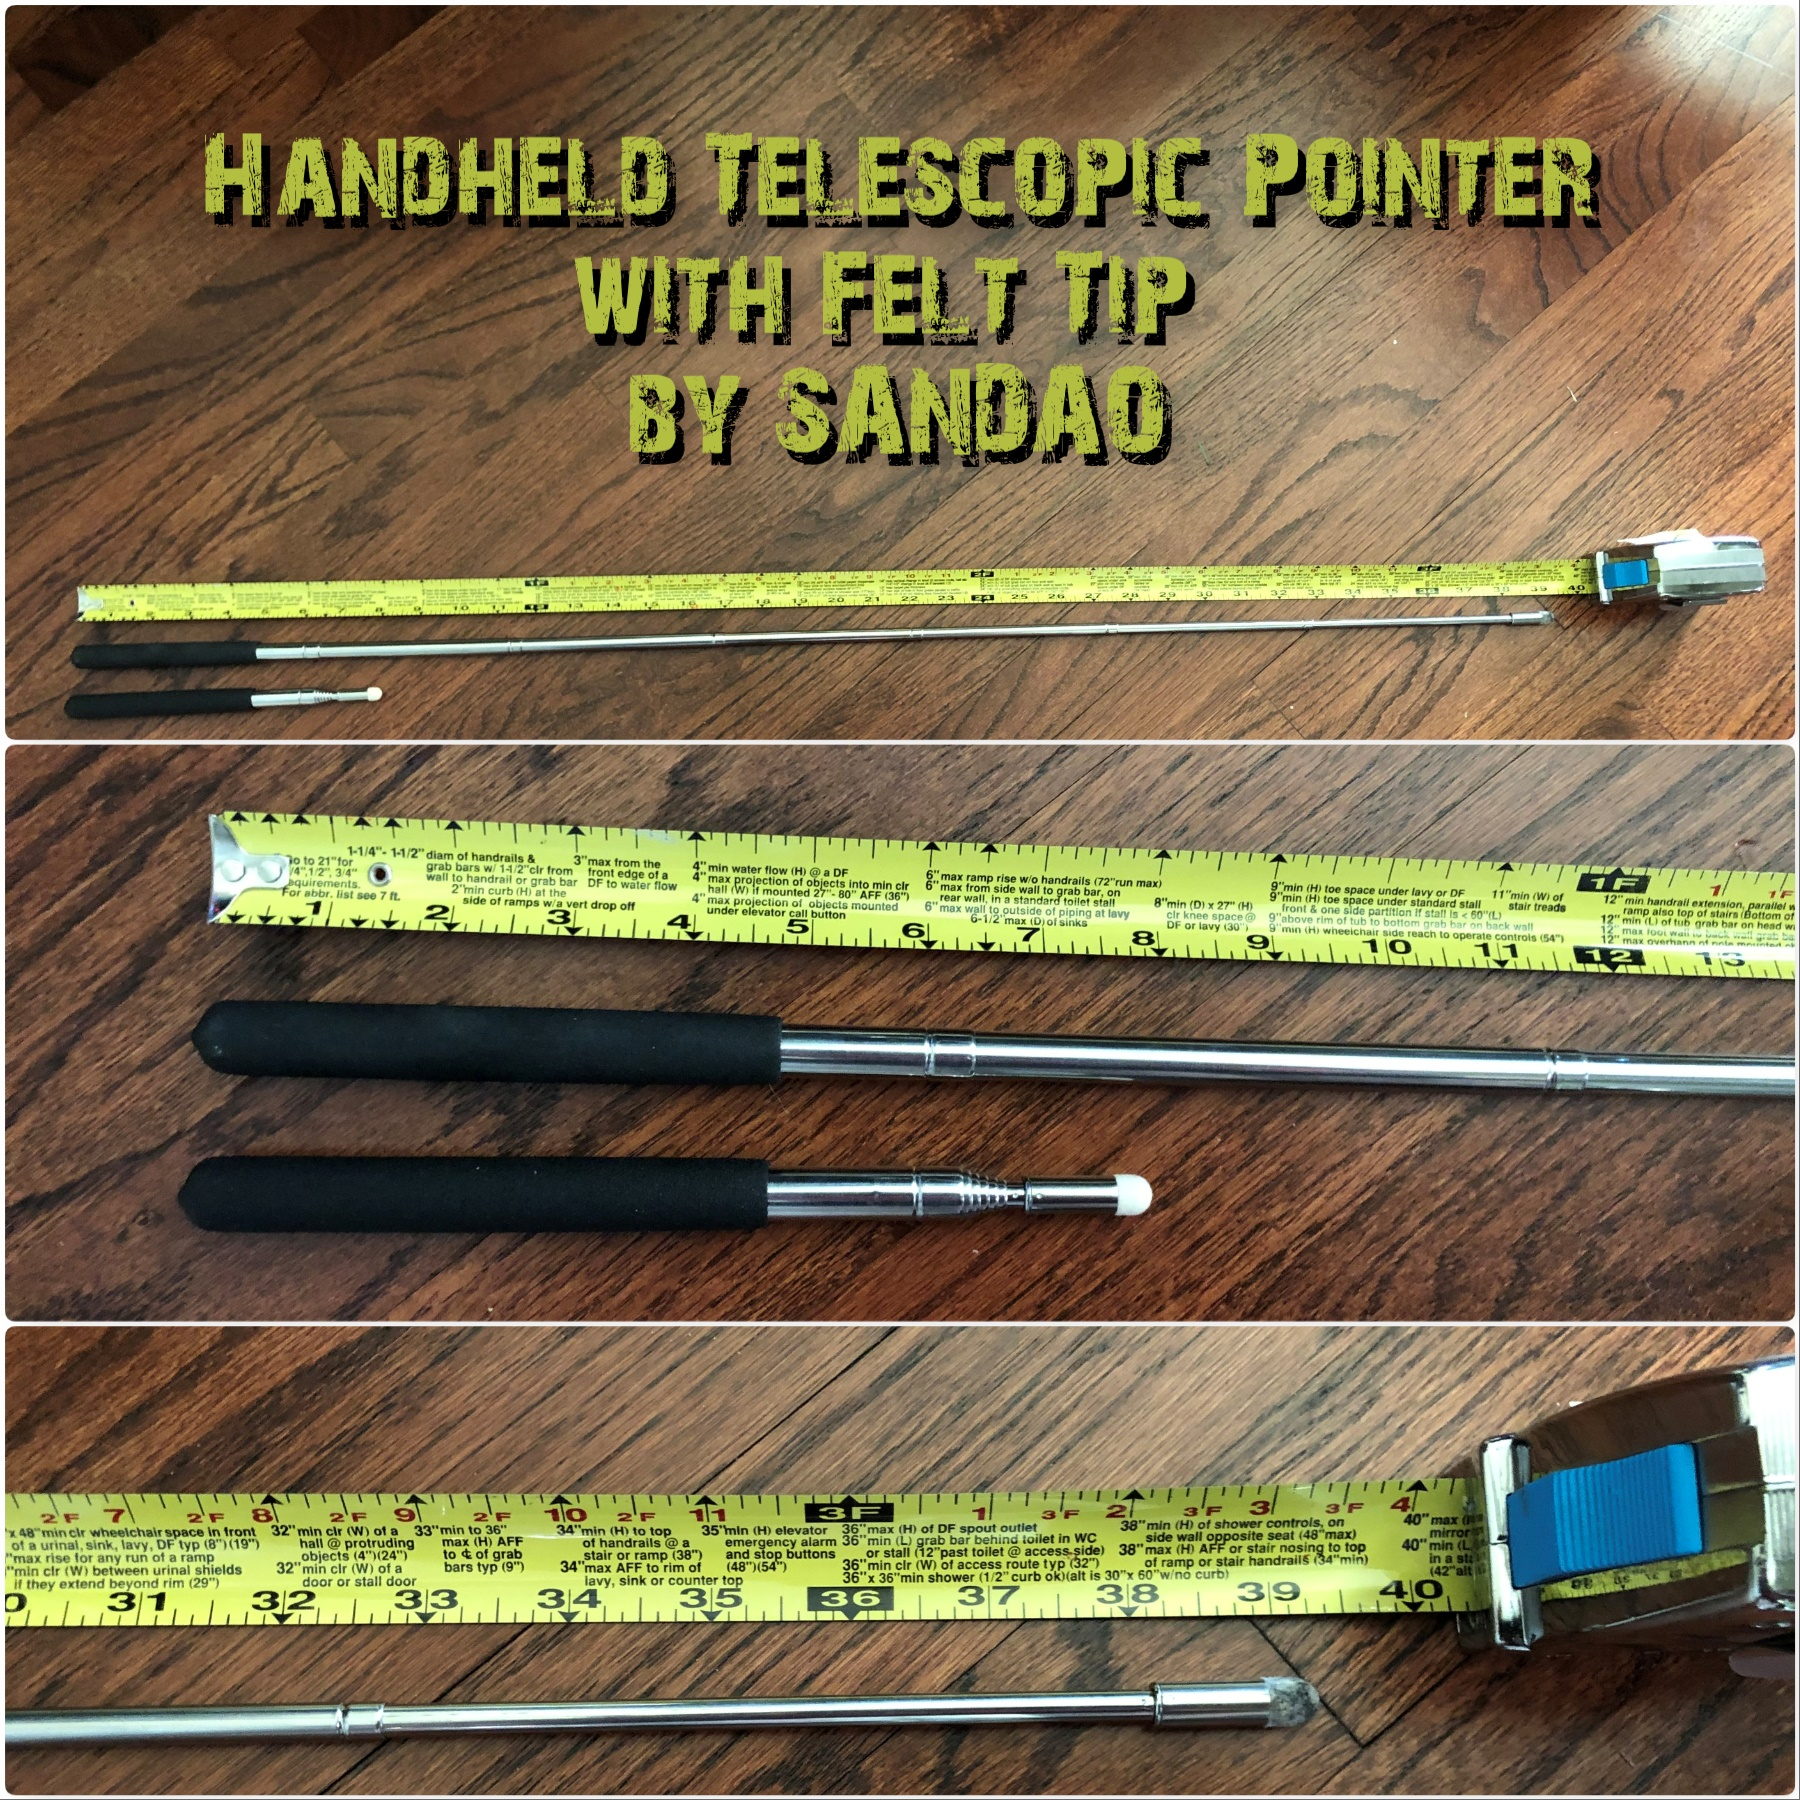 Fantastic Handheld Telescopic Pointer with Felt Tip by SANDAO